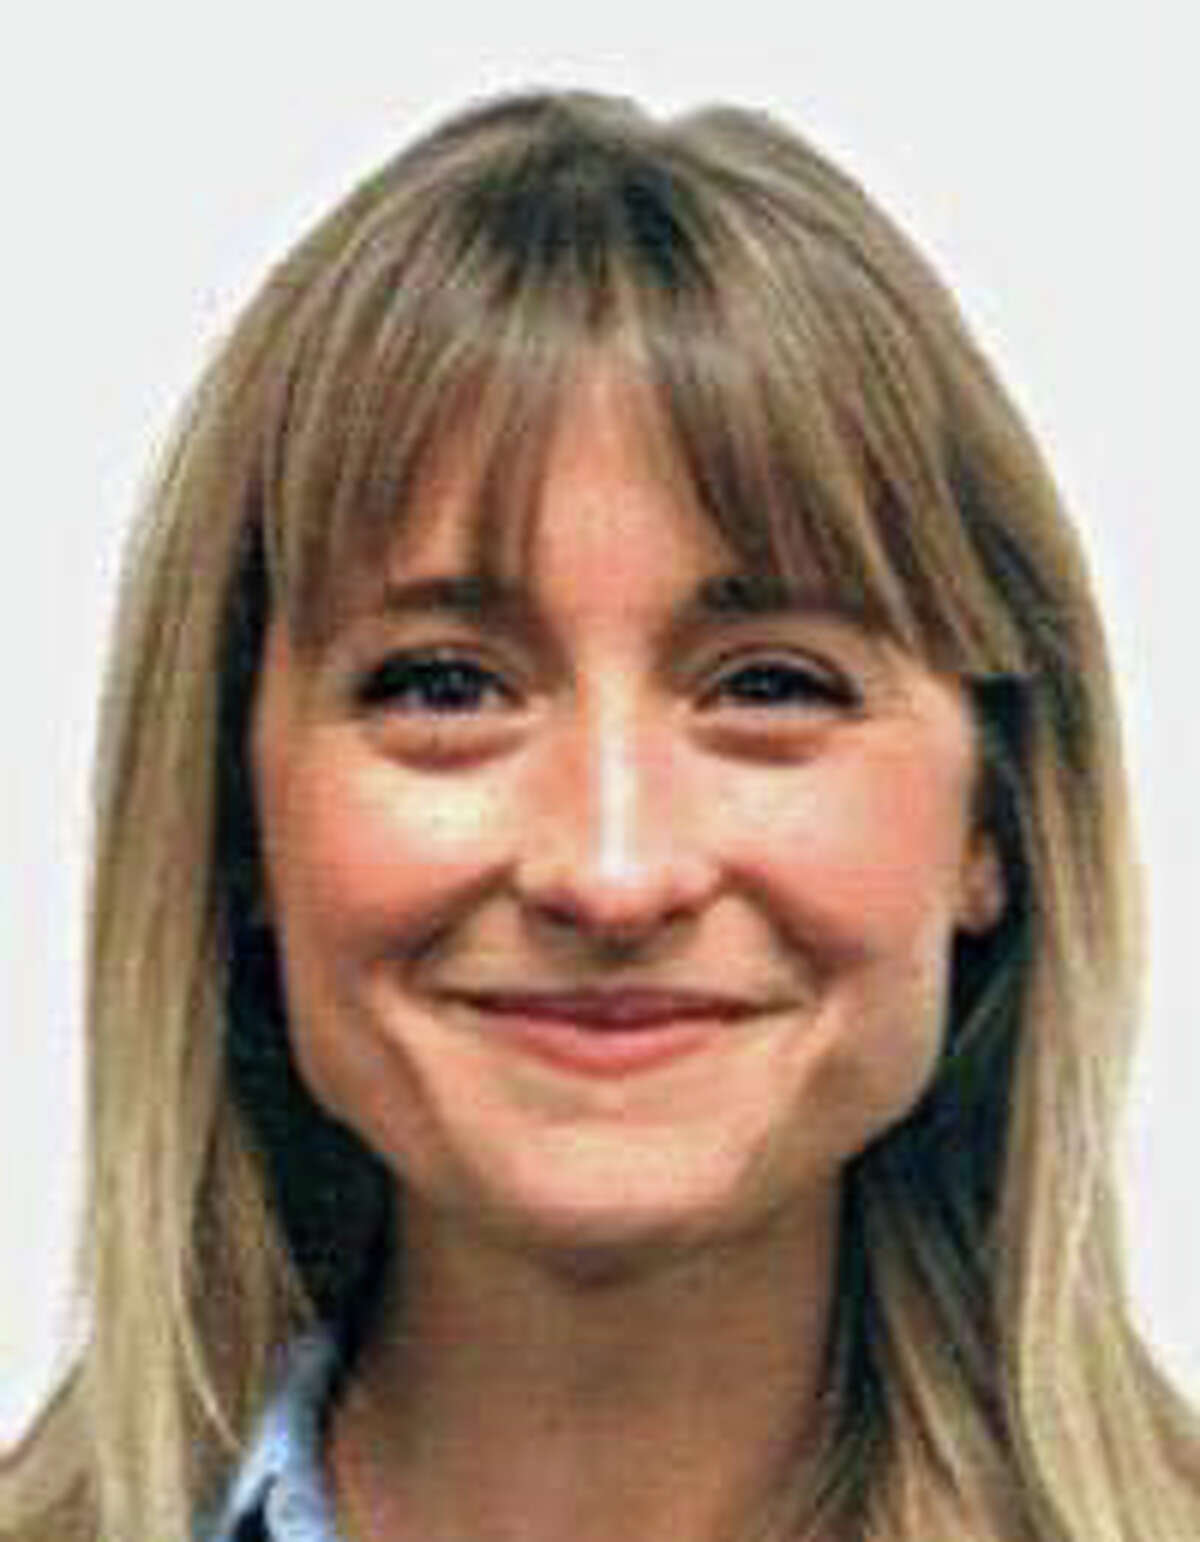 This photo of Allison Mack was submitted as evidence in the federal trial of Keith Raniere. (U.S. Department of Justice)